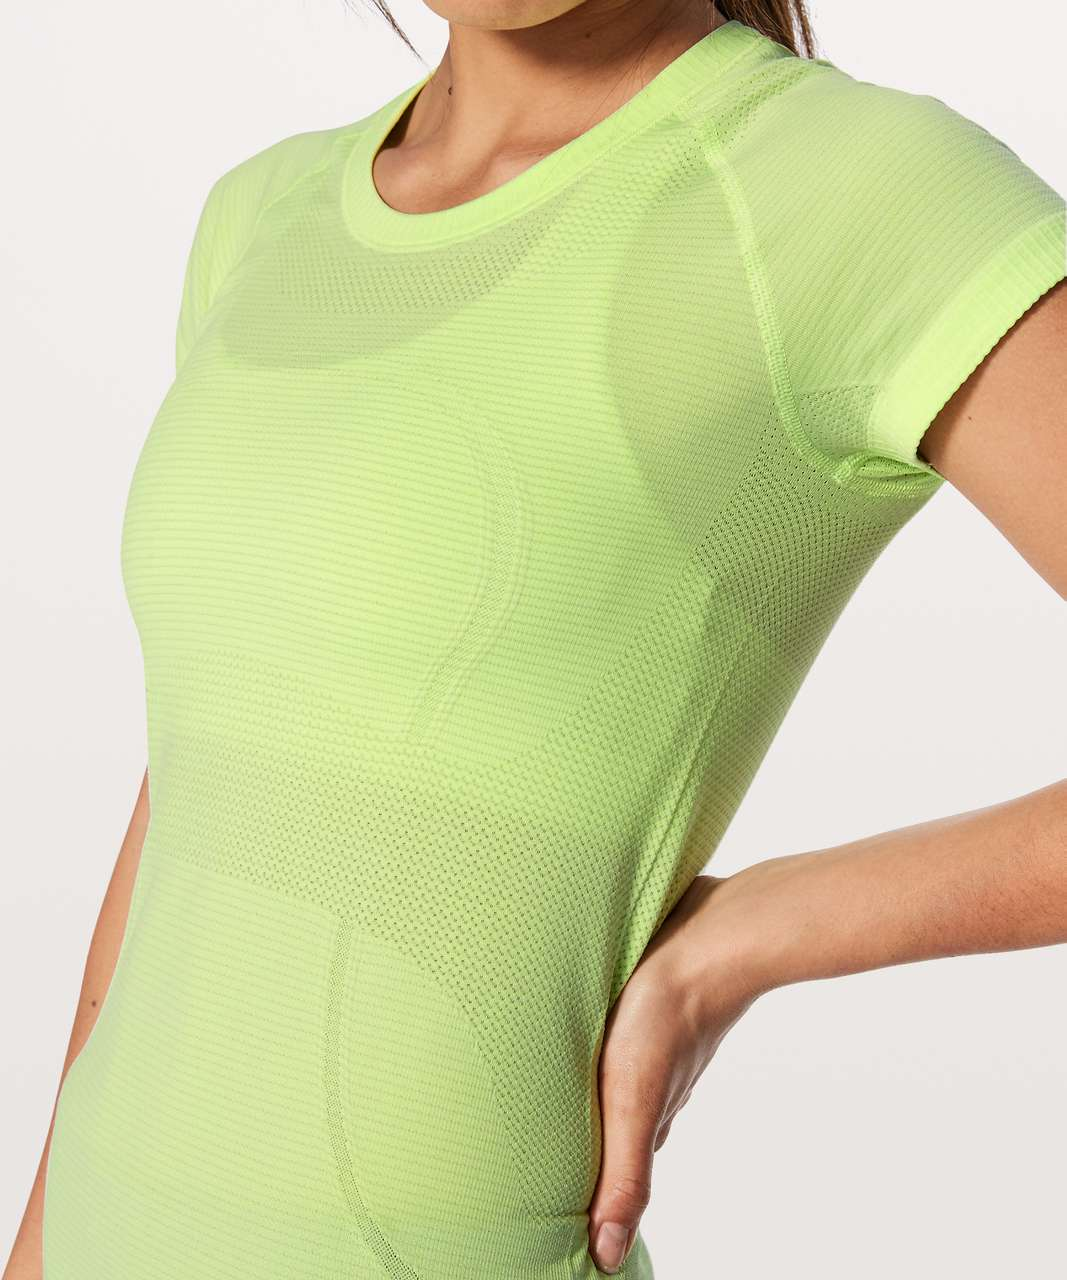 Lululemon Swiftly Tech Short Sleeve Crew - Clear Mint / White